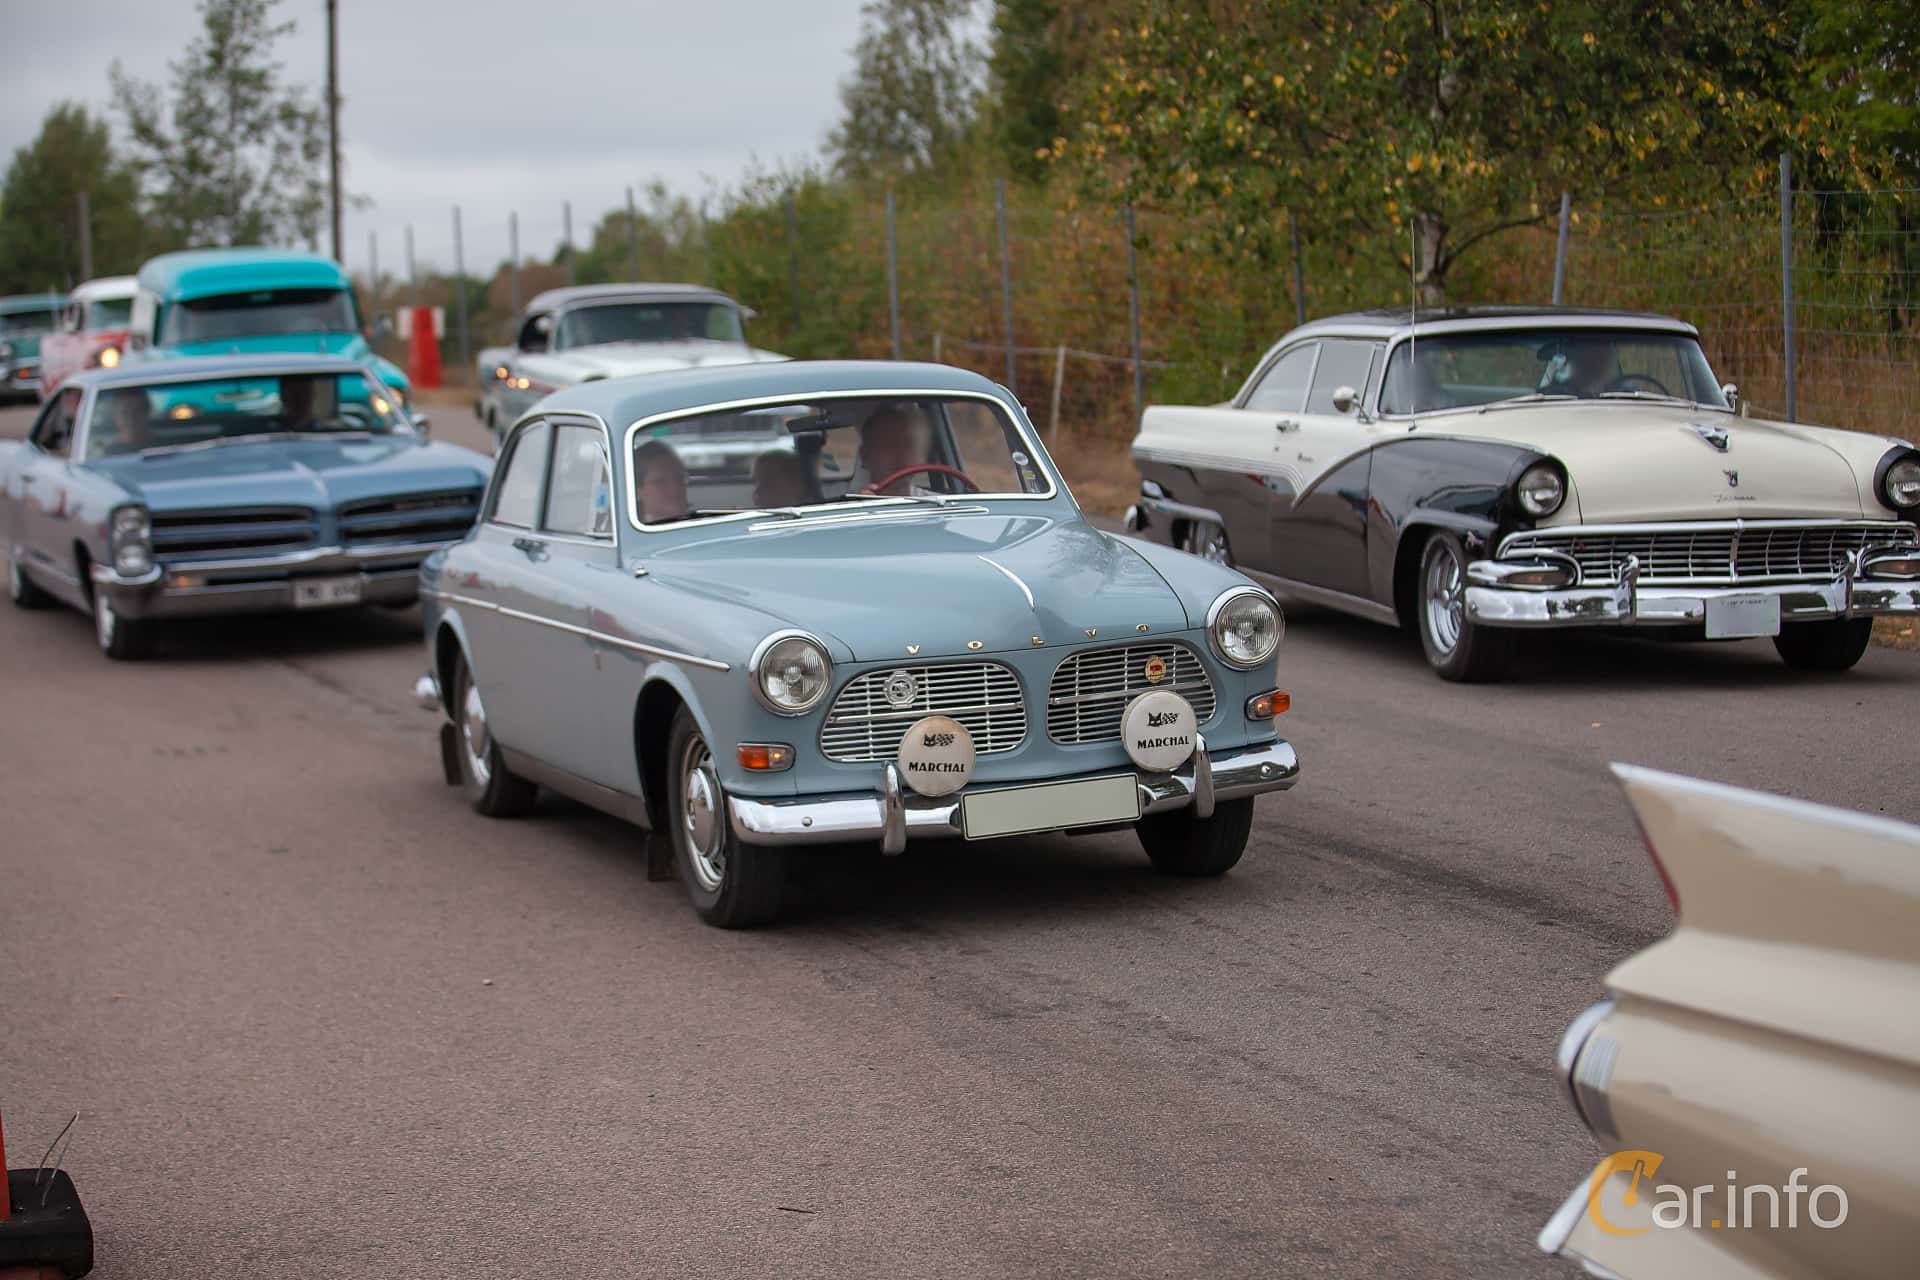 1 images of volvo amazon 121 p130 1 8 b18a manual 75hp 1965 by jarbo rh car info 1965 Volvo 544 1962 Volvo